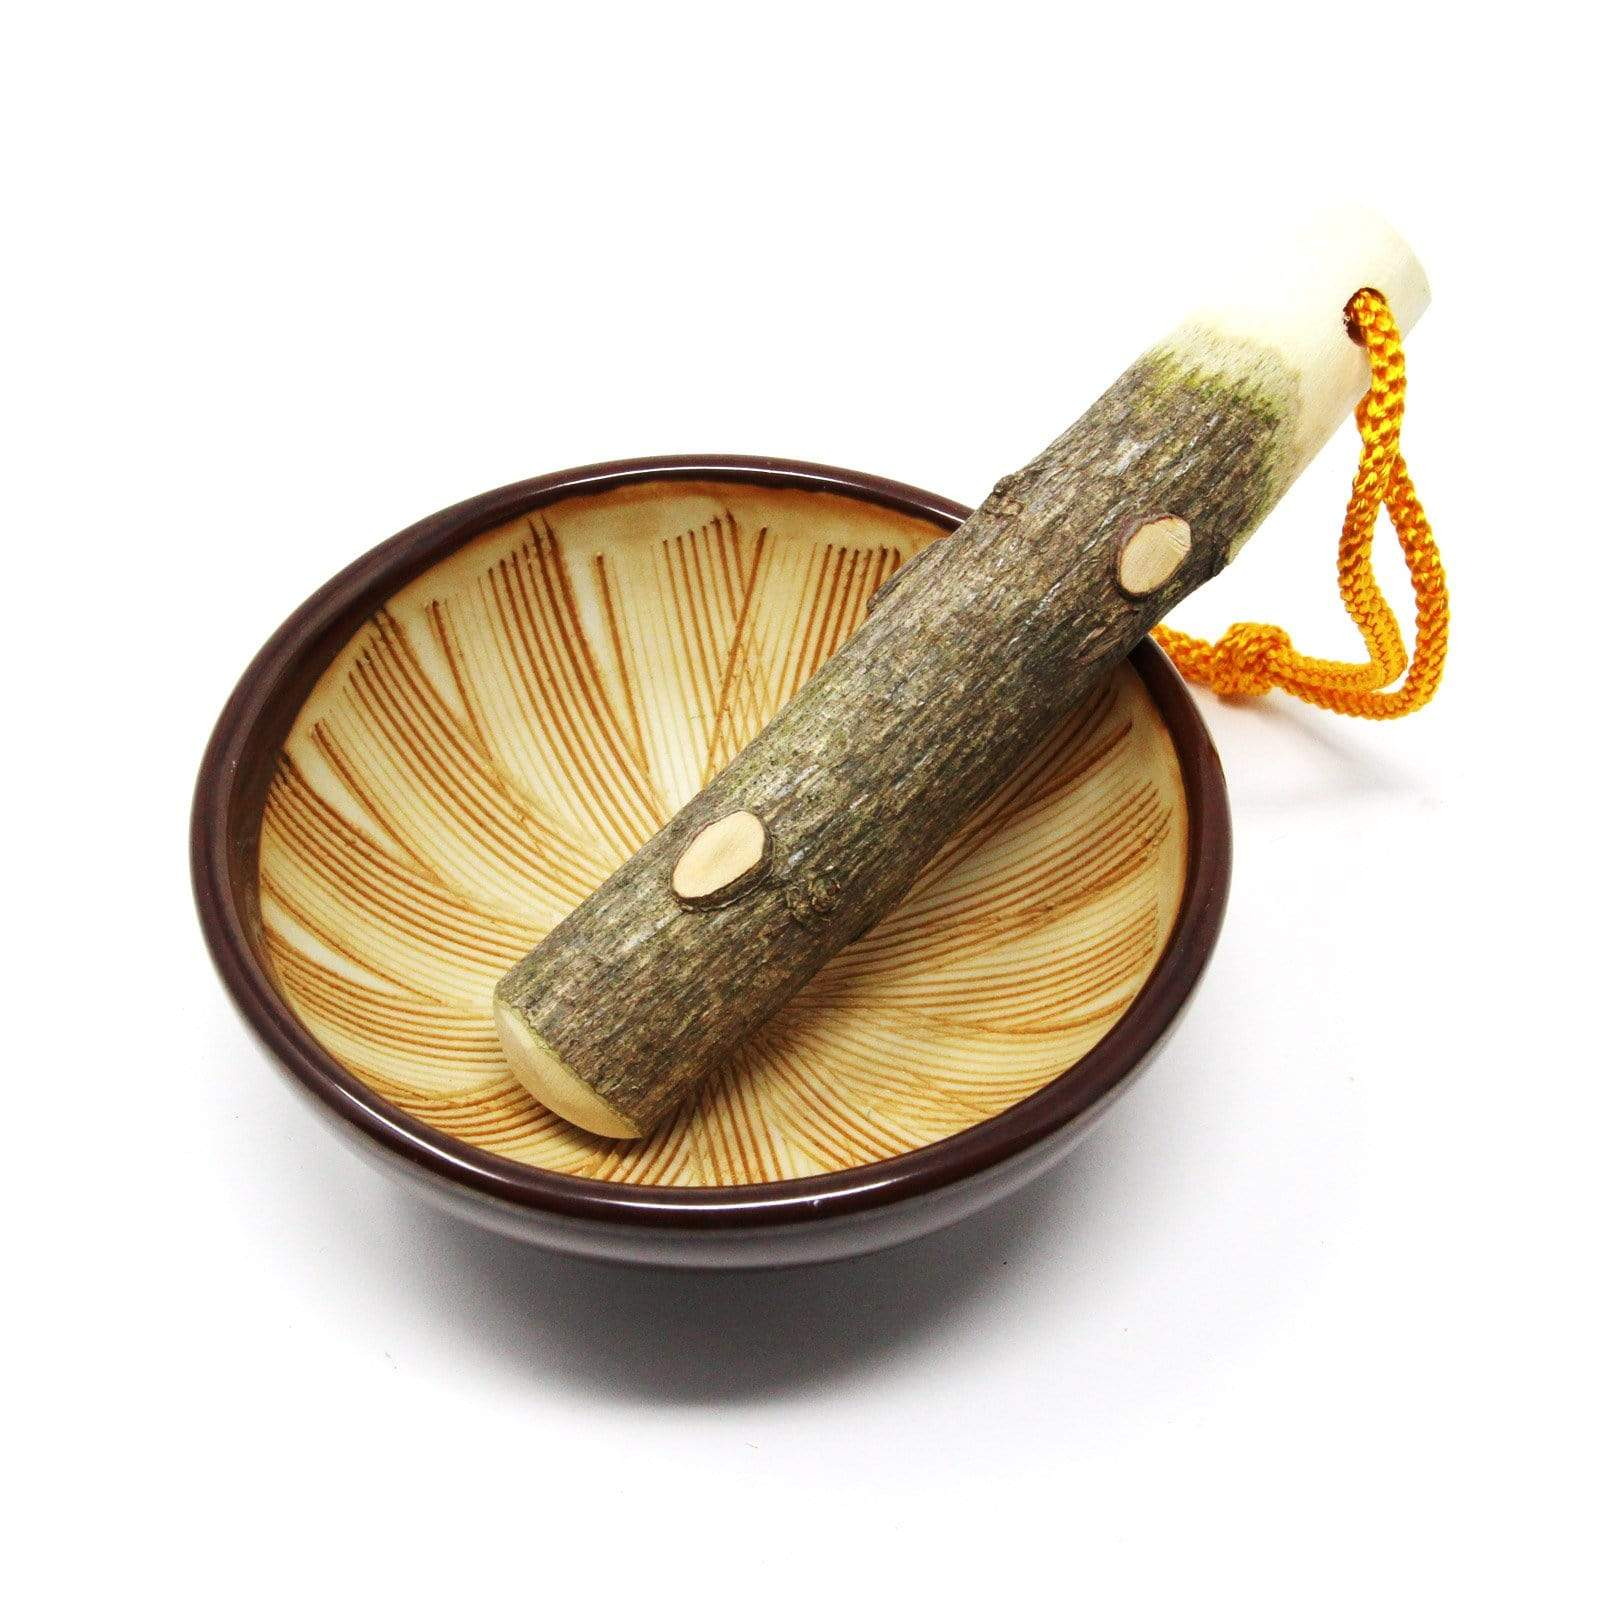 Yamacoh Traditional Seto-Ware Suribachi Mortar & Surikogi Pestle - Small Mortar & Pestles